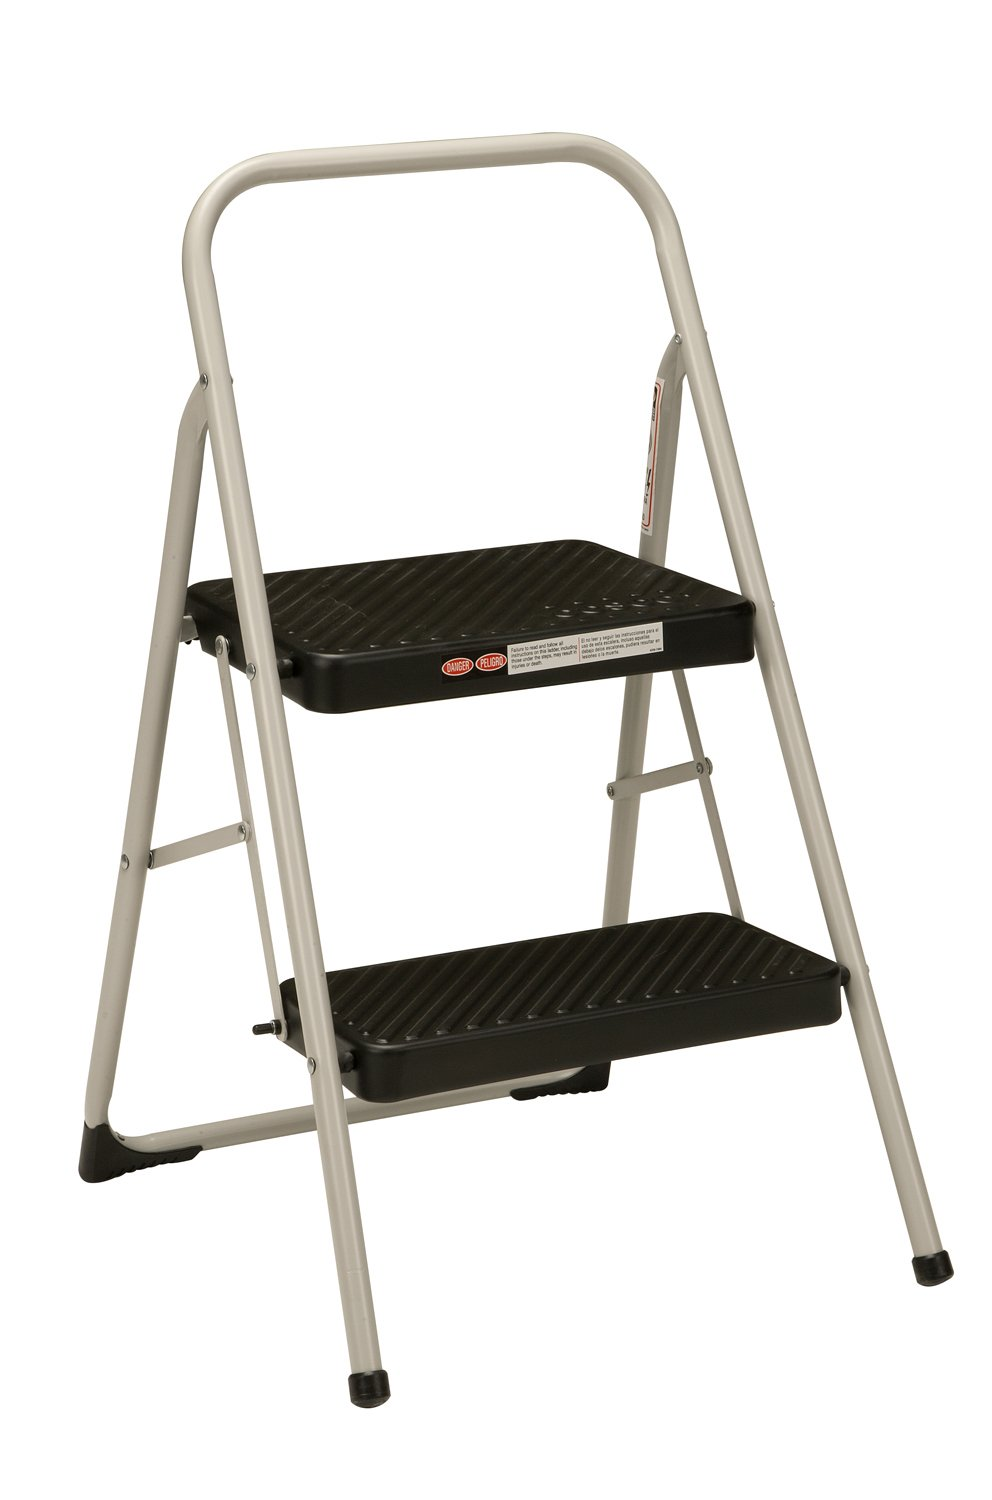 The Best step ladder - Our pick